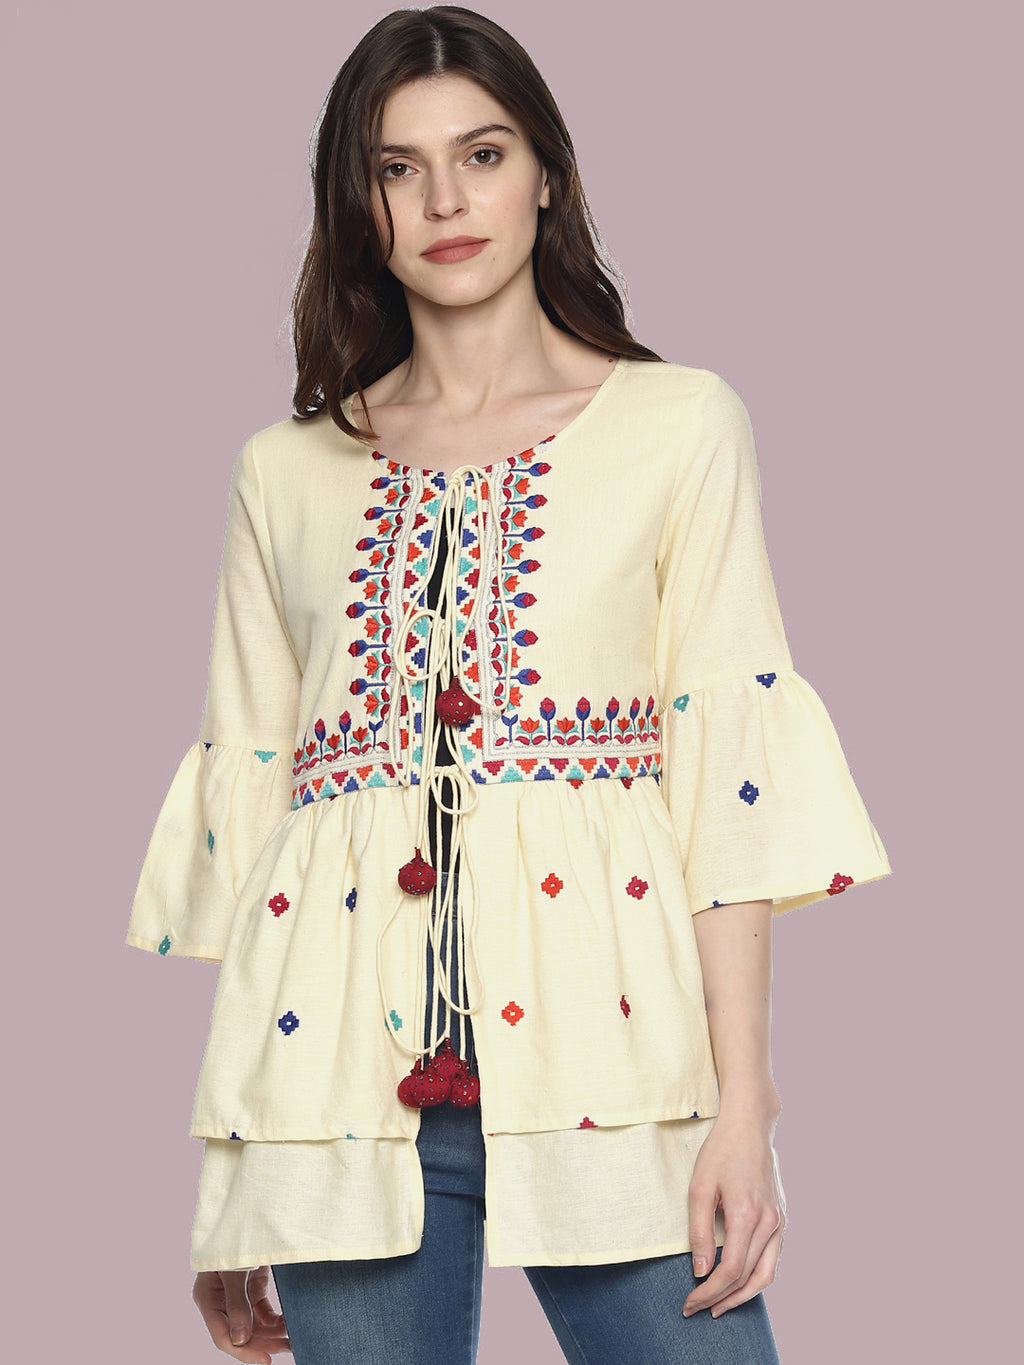 Off White Organic Cotton Shrug With Embroidery